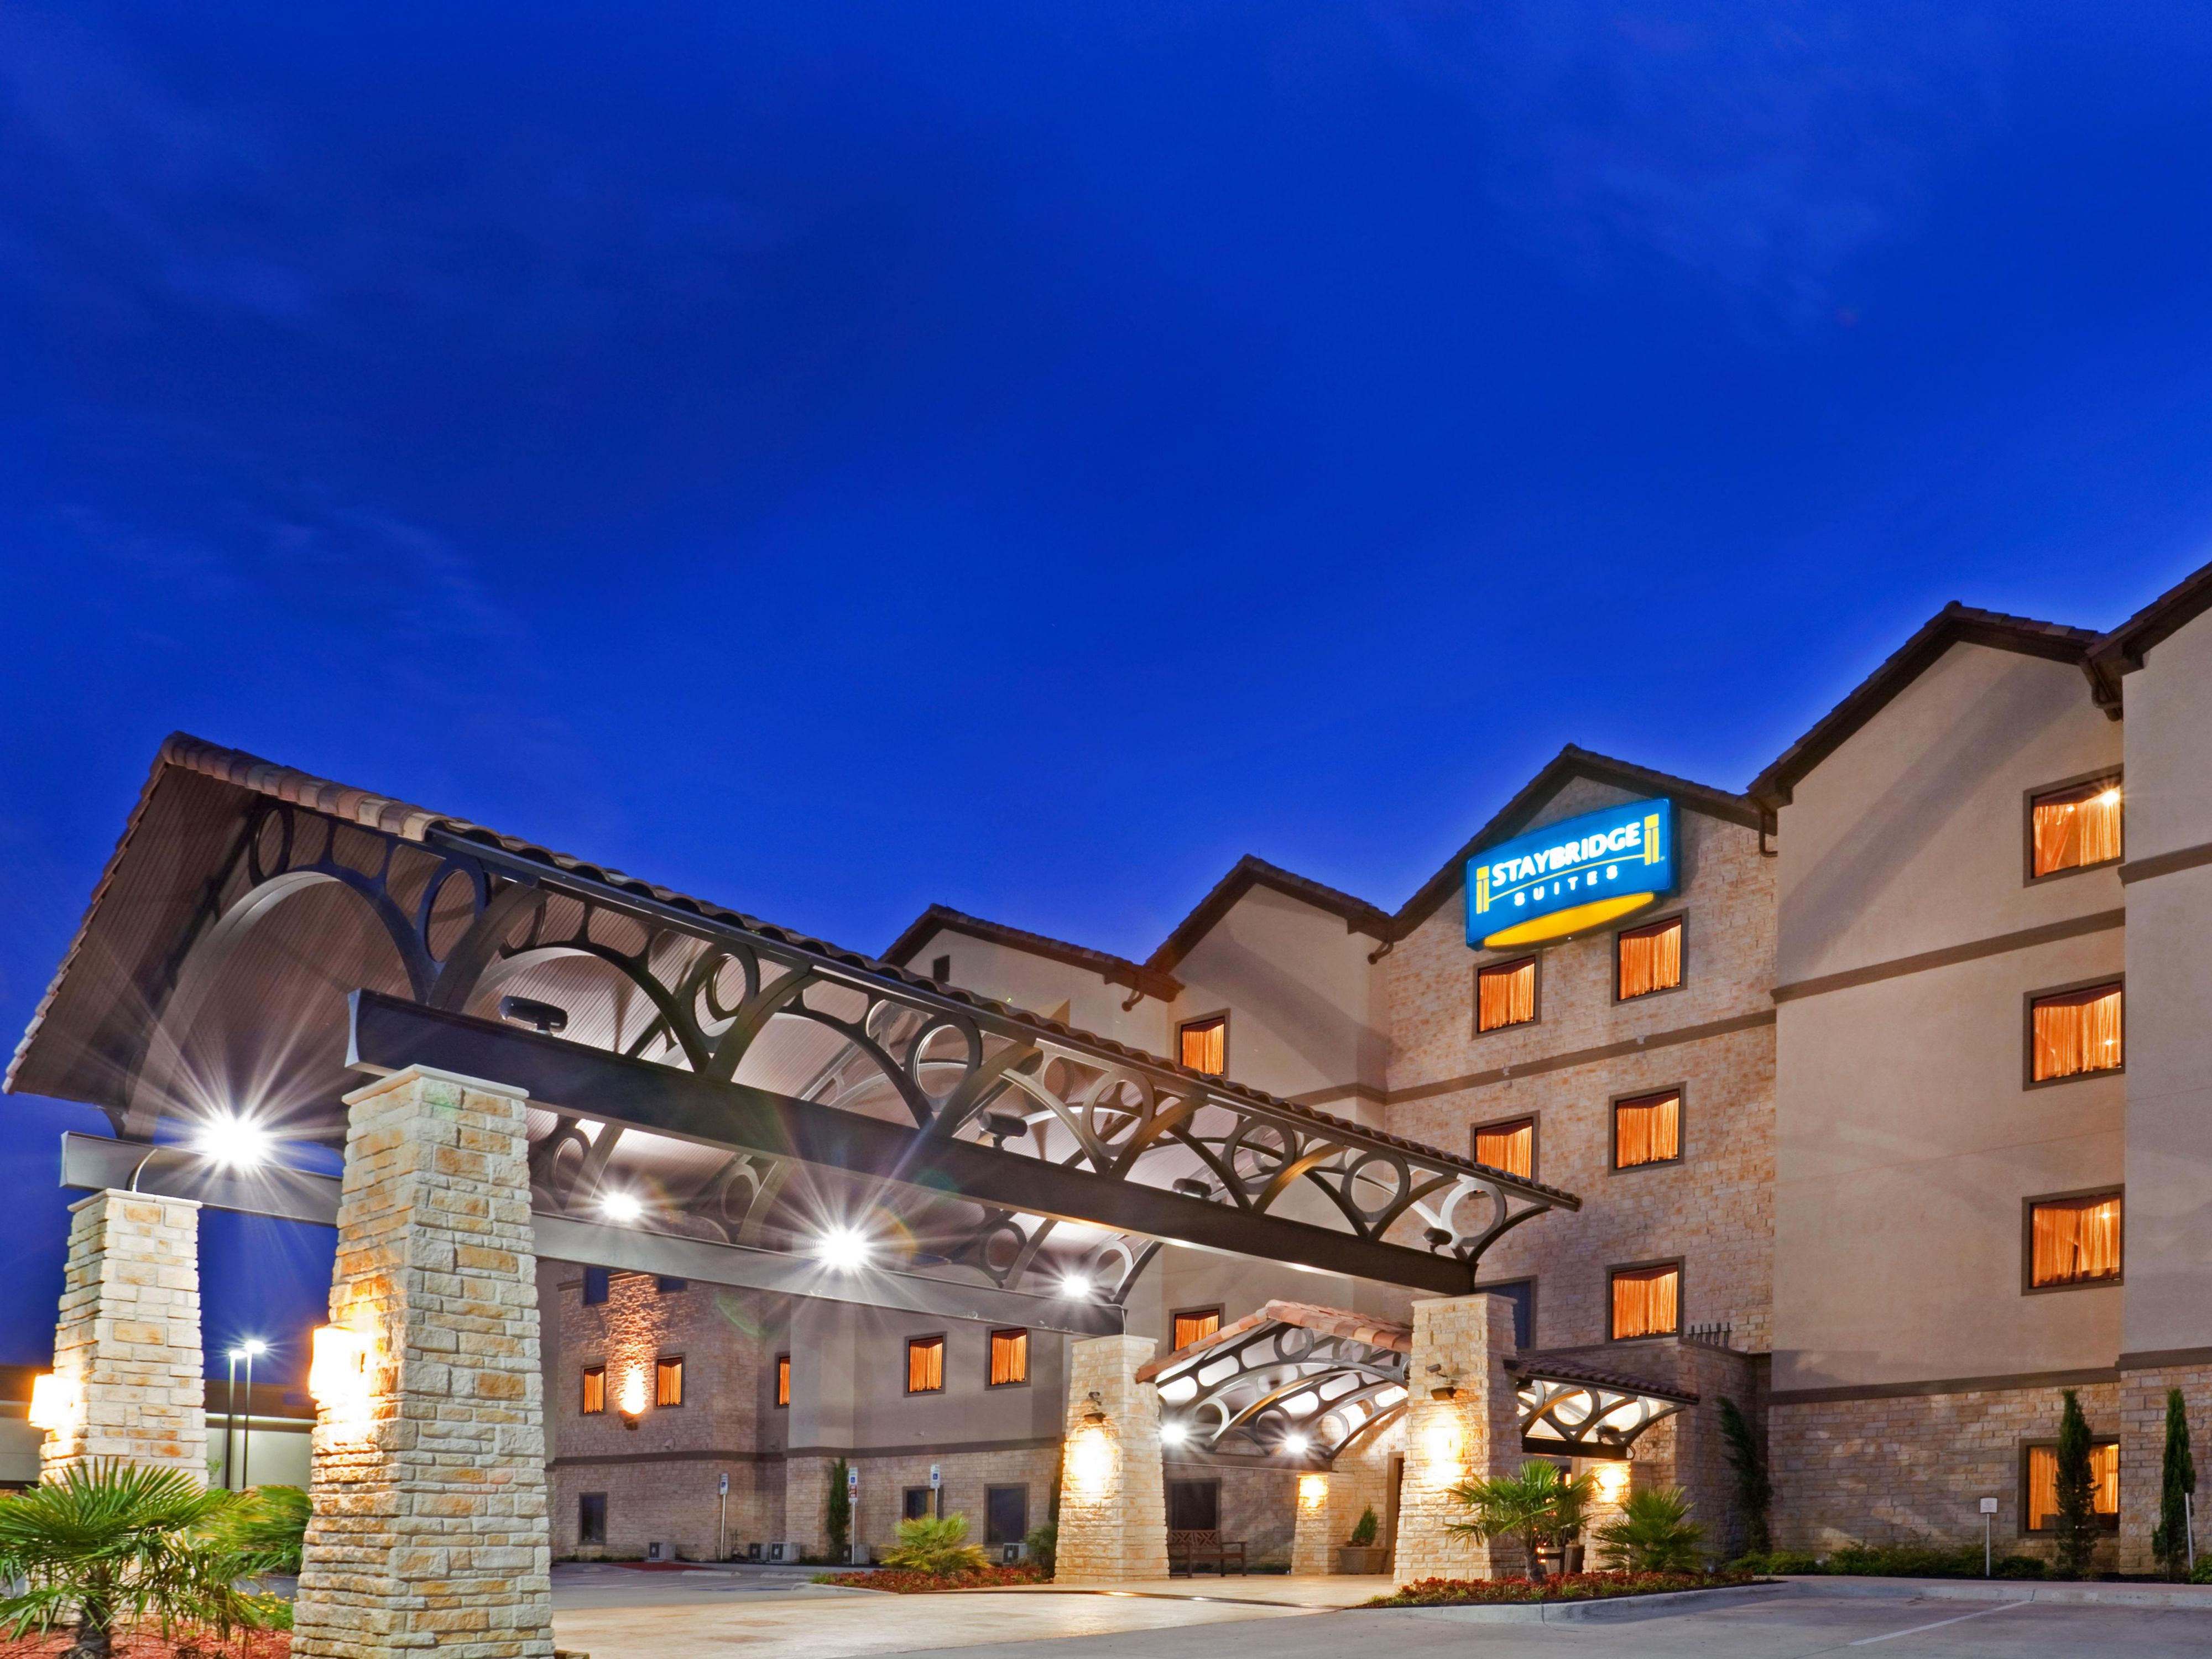 Irving Hotels Staybridge Suites Dfw Airport North Extended Stay Hotel In Texas